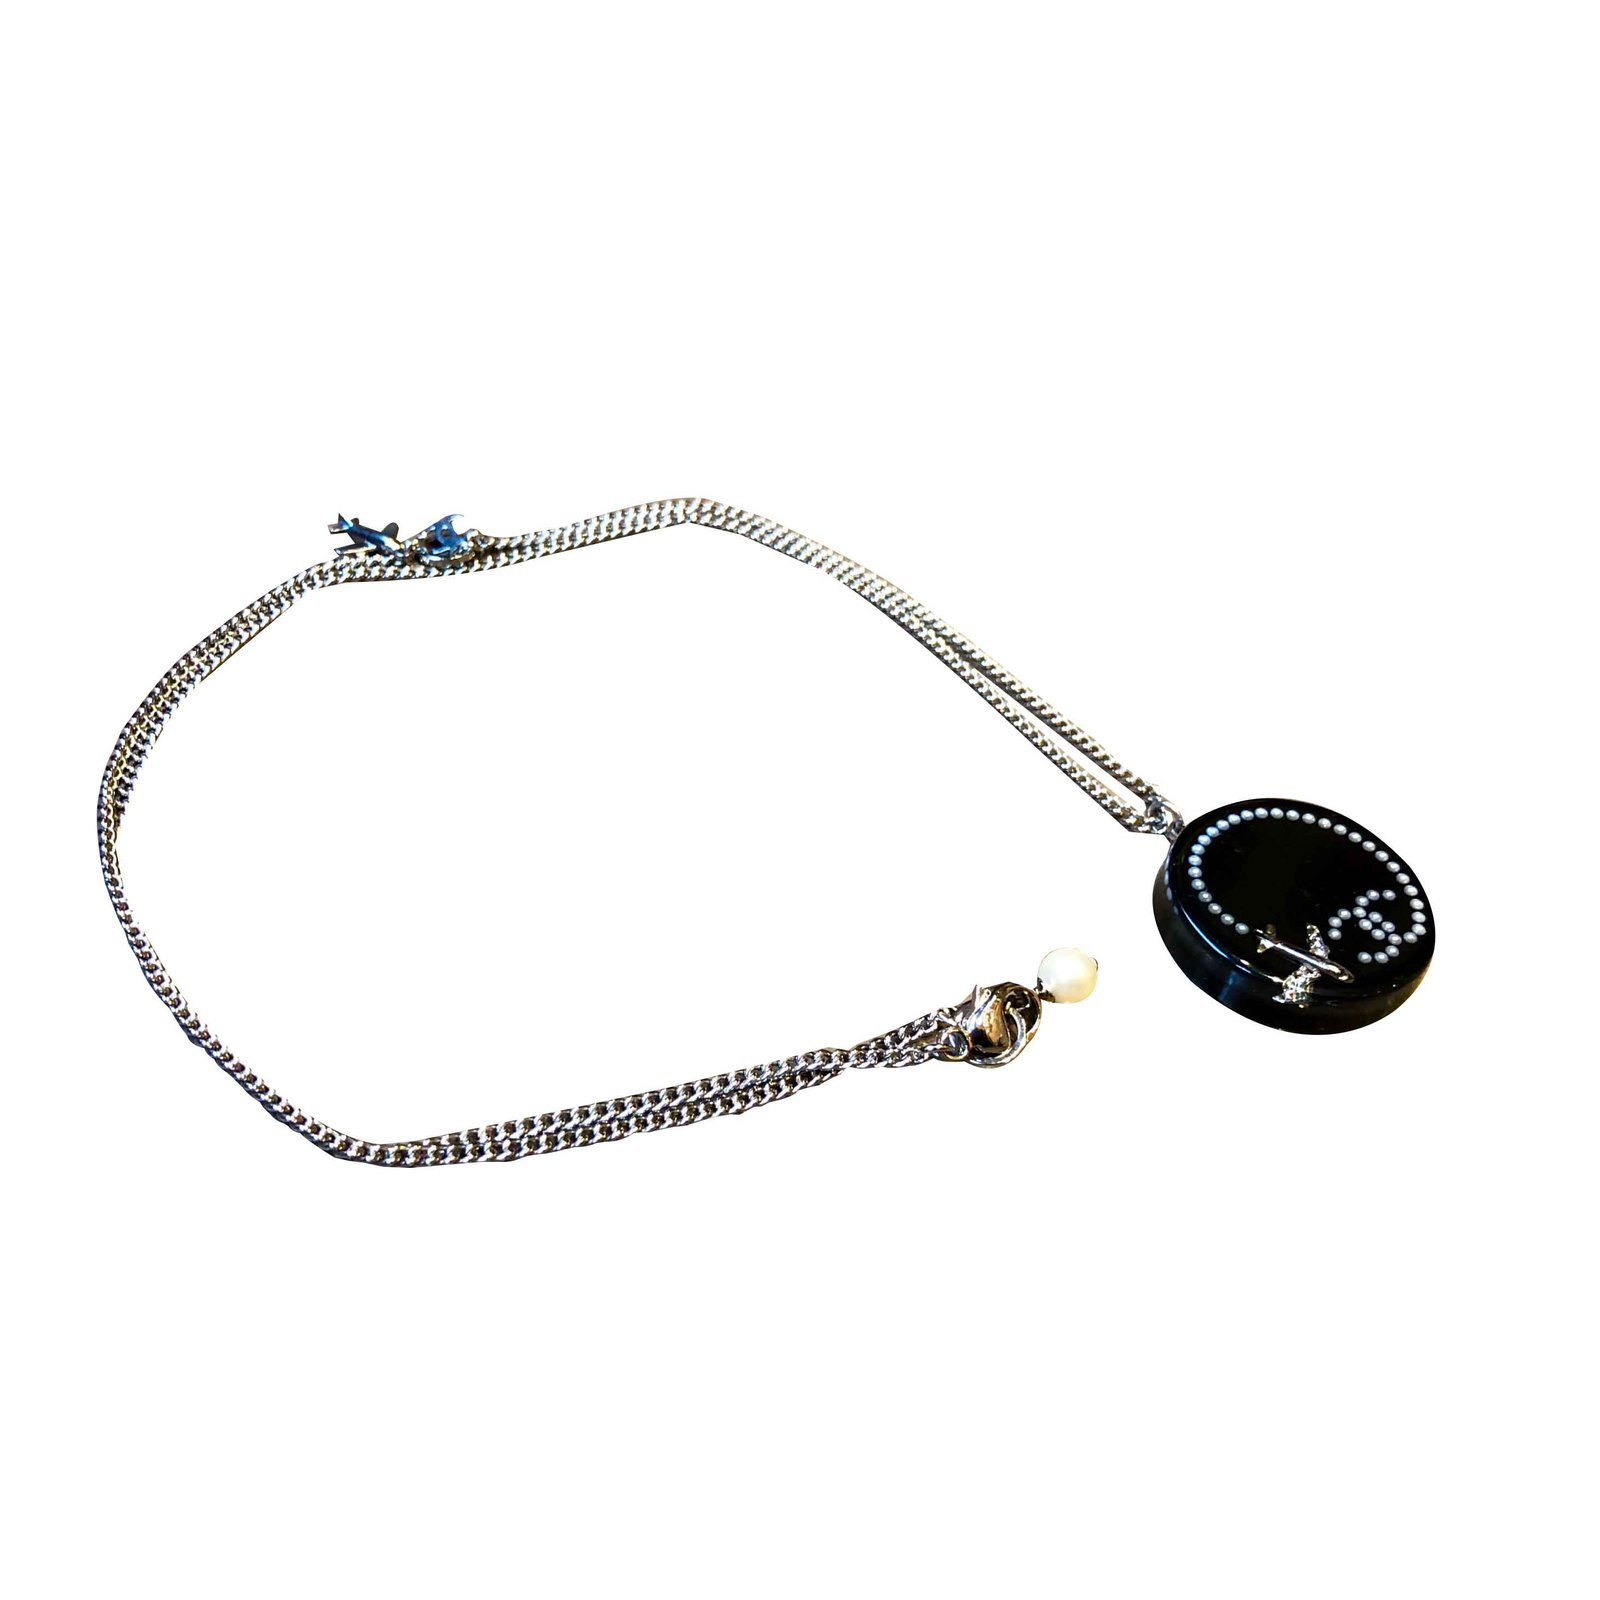 79f0cb19b2371a Chanel Sublime chanel necklace Necklaces Steel,Resin Black,Silvery  ref.108092